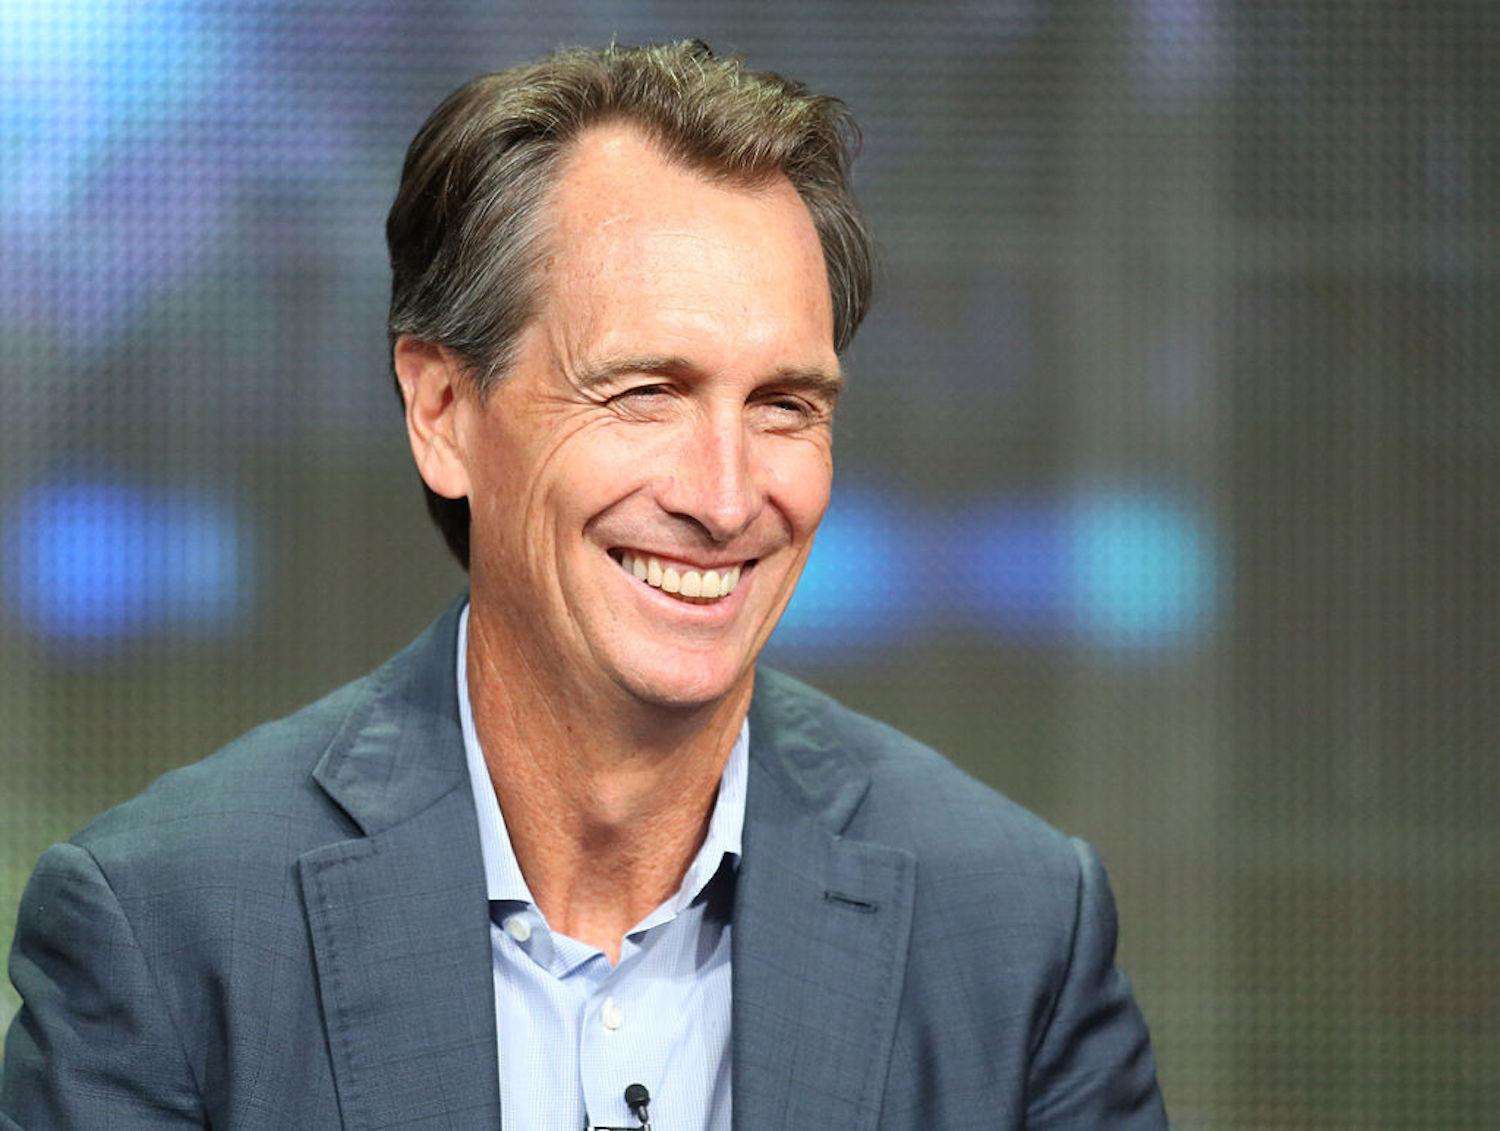 Cris Collinsworth made demeaning comments about female football fans on Wednesday night, and he issued an apology shortly after.